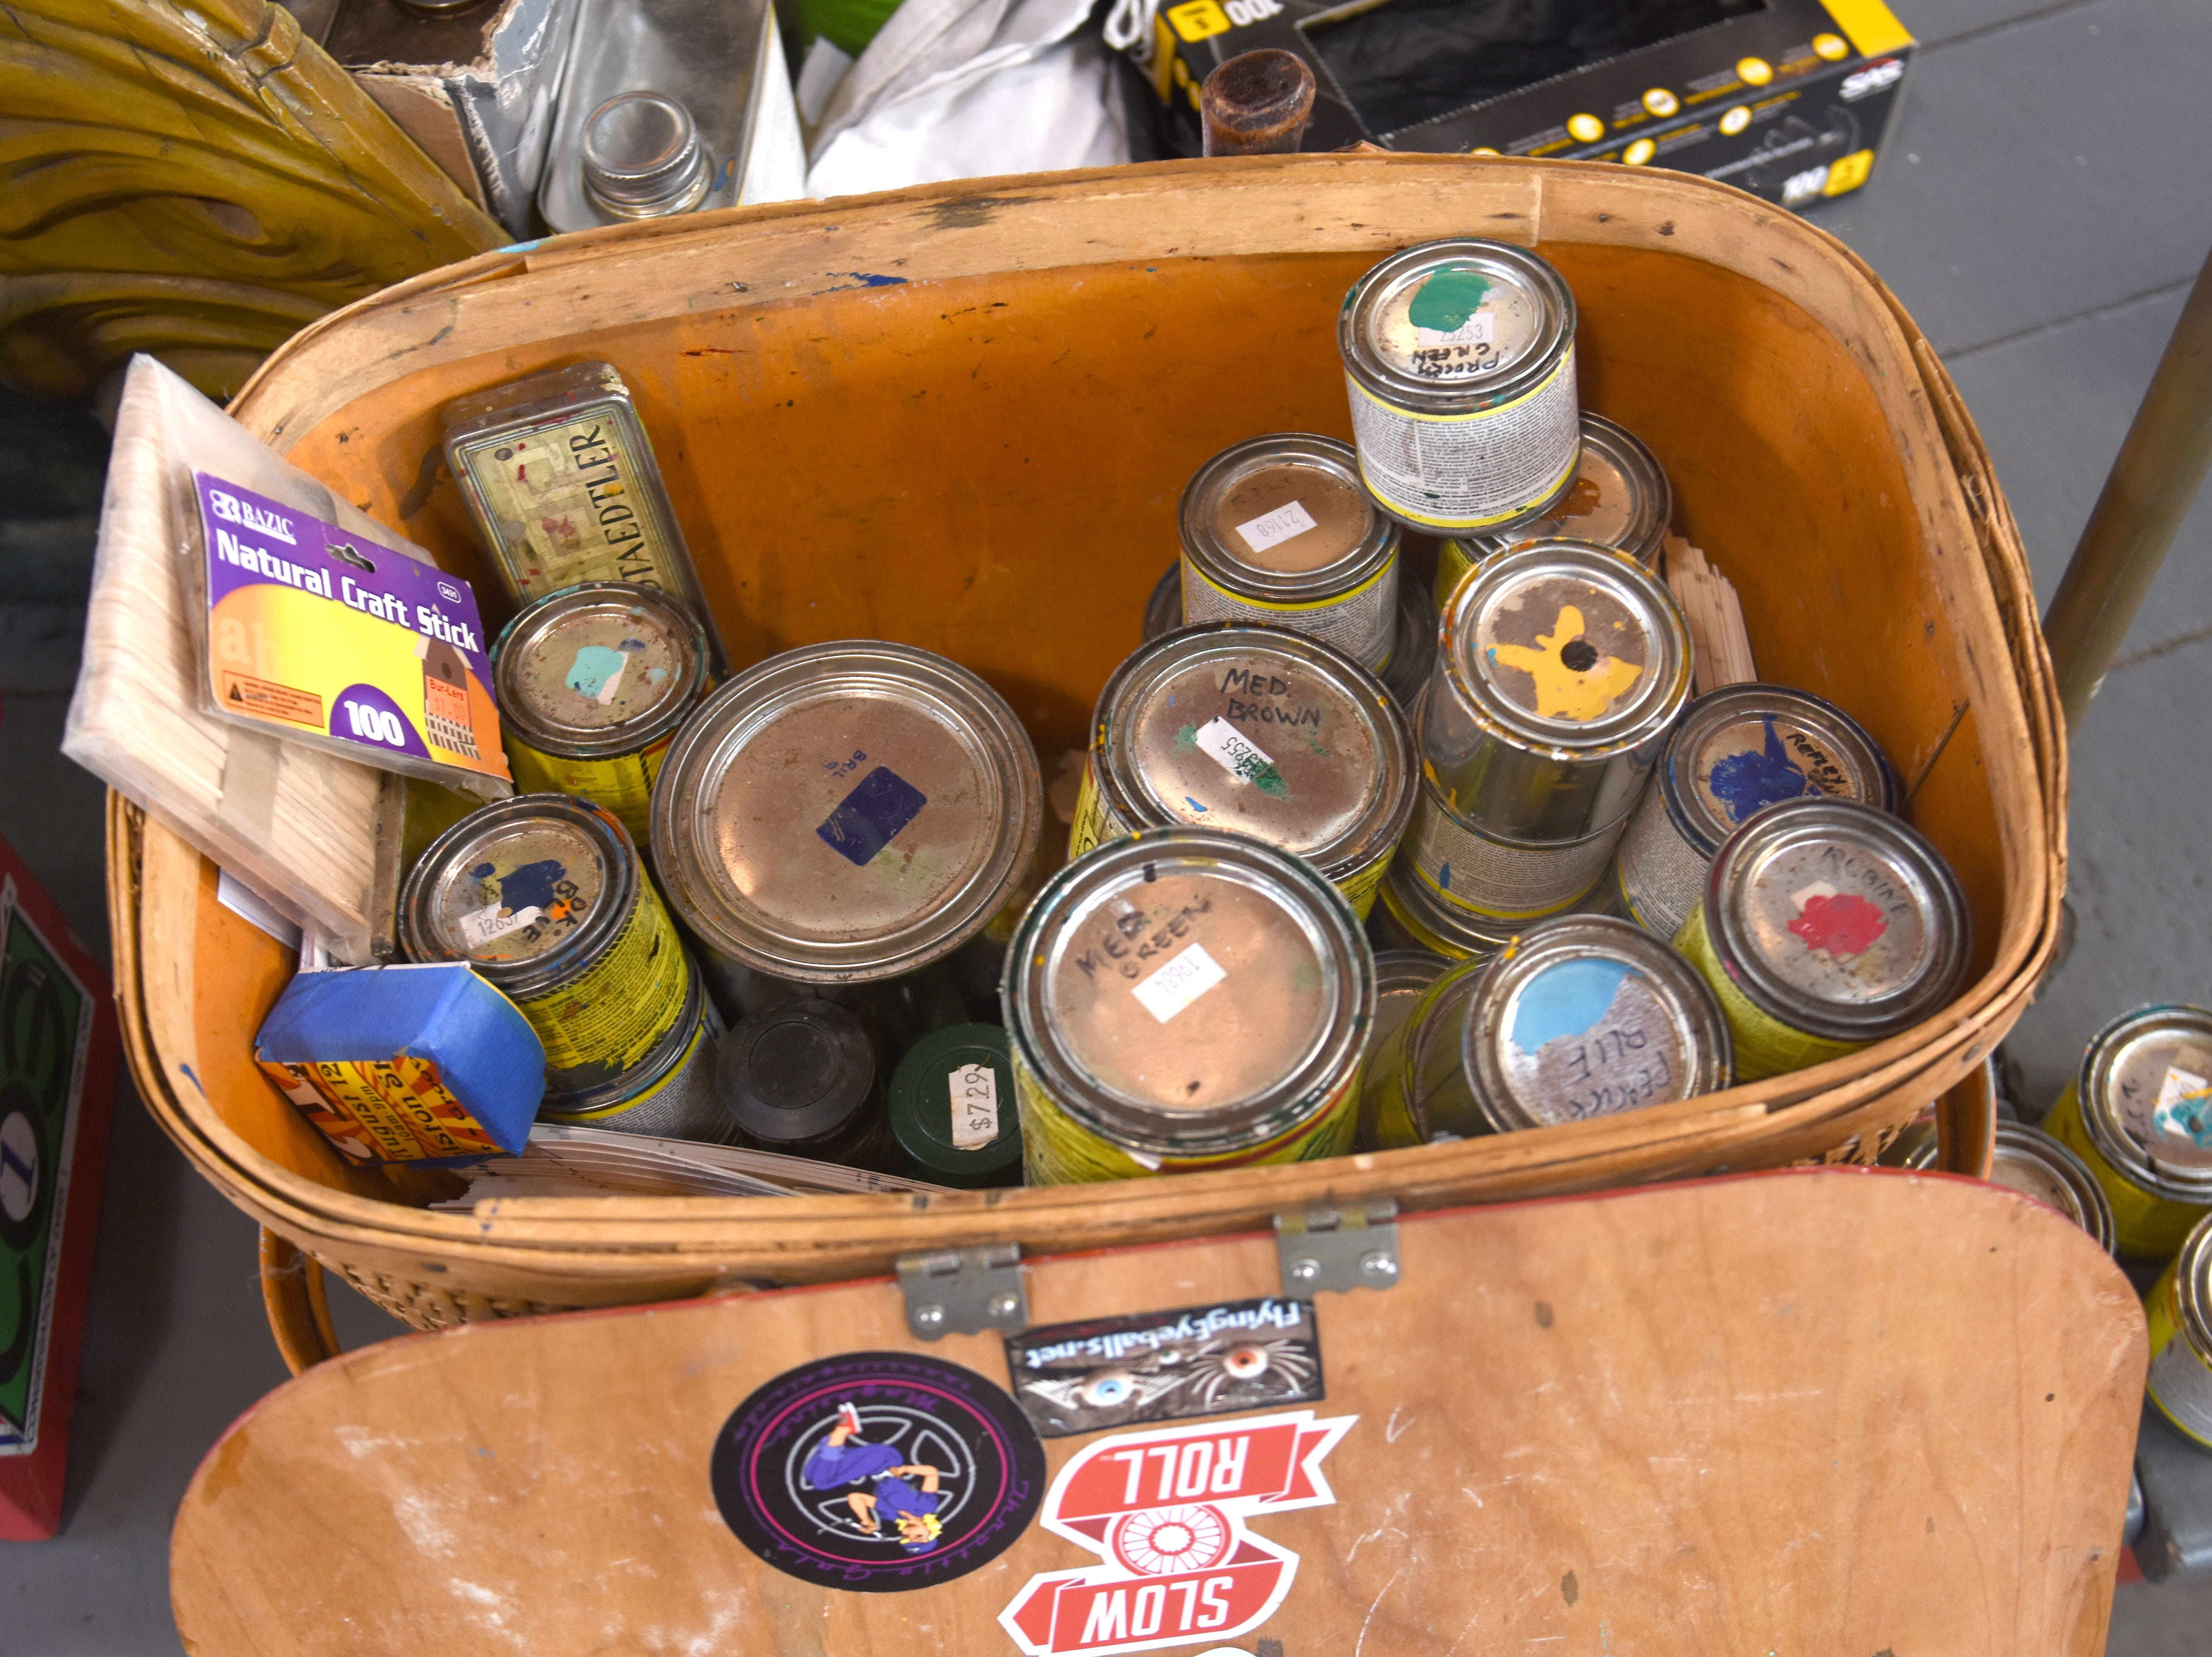 Small paint cans are part of Julie Fournier's palette of colors.